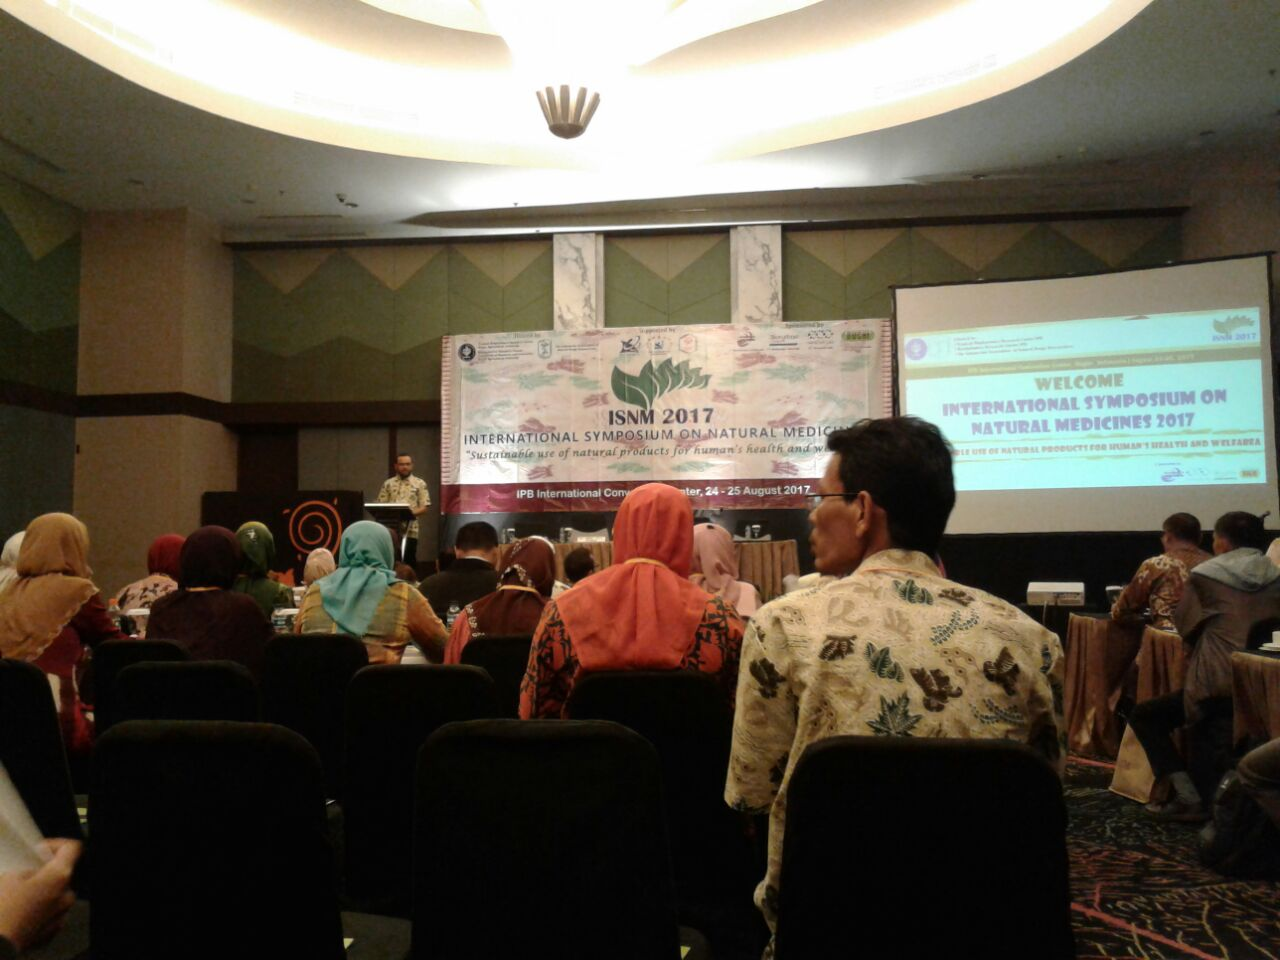 PARTISIPASI BP2LHK BANJARBARU DALAM INTERNATIONAL SYMPOSIUM ON NATURAL  MEDICINES (ISNM) 2017